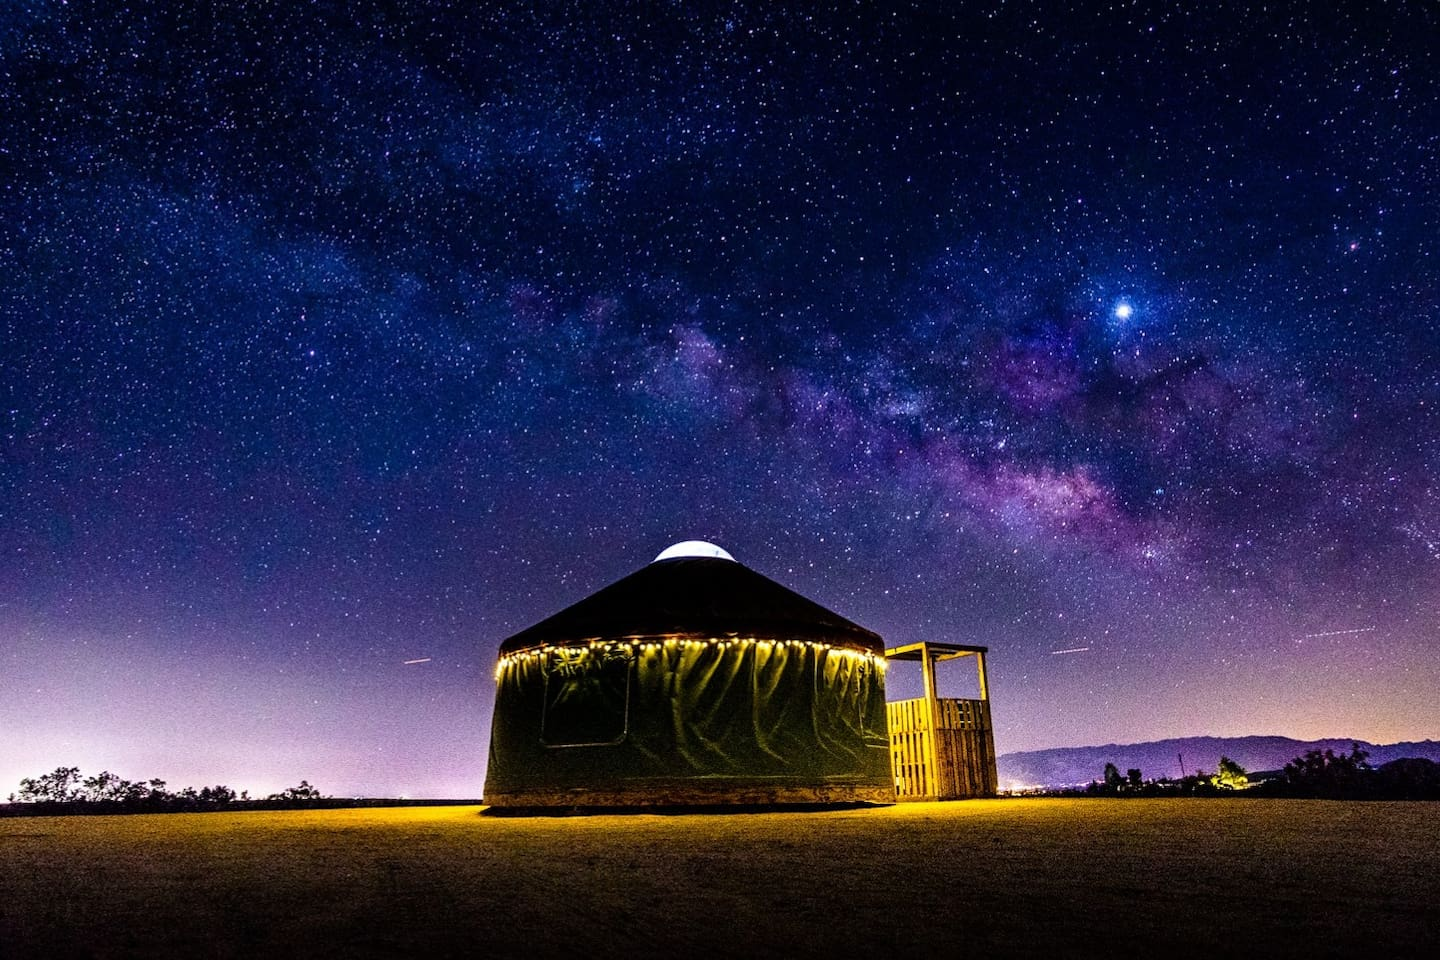 The average cost to stay in this yurt is $138